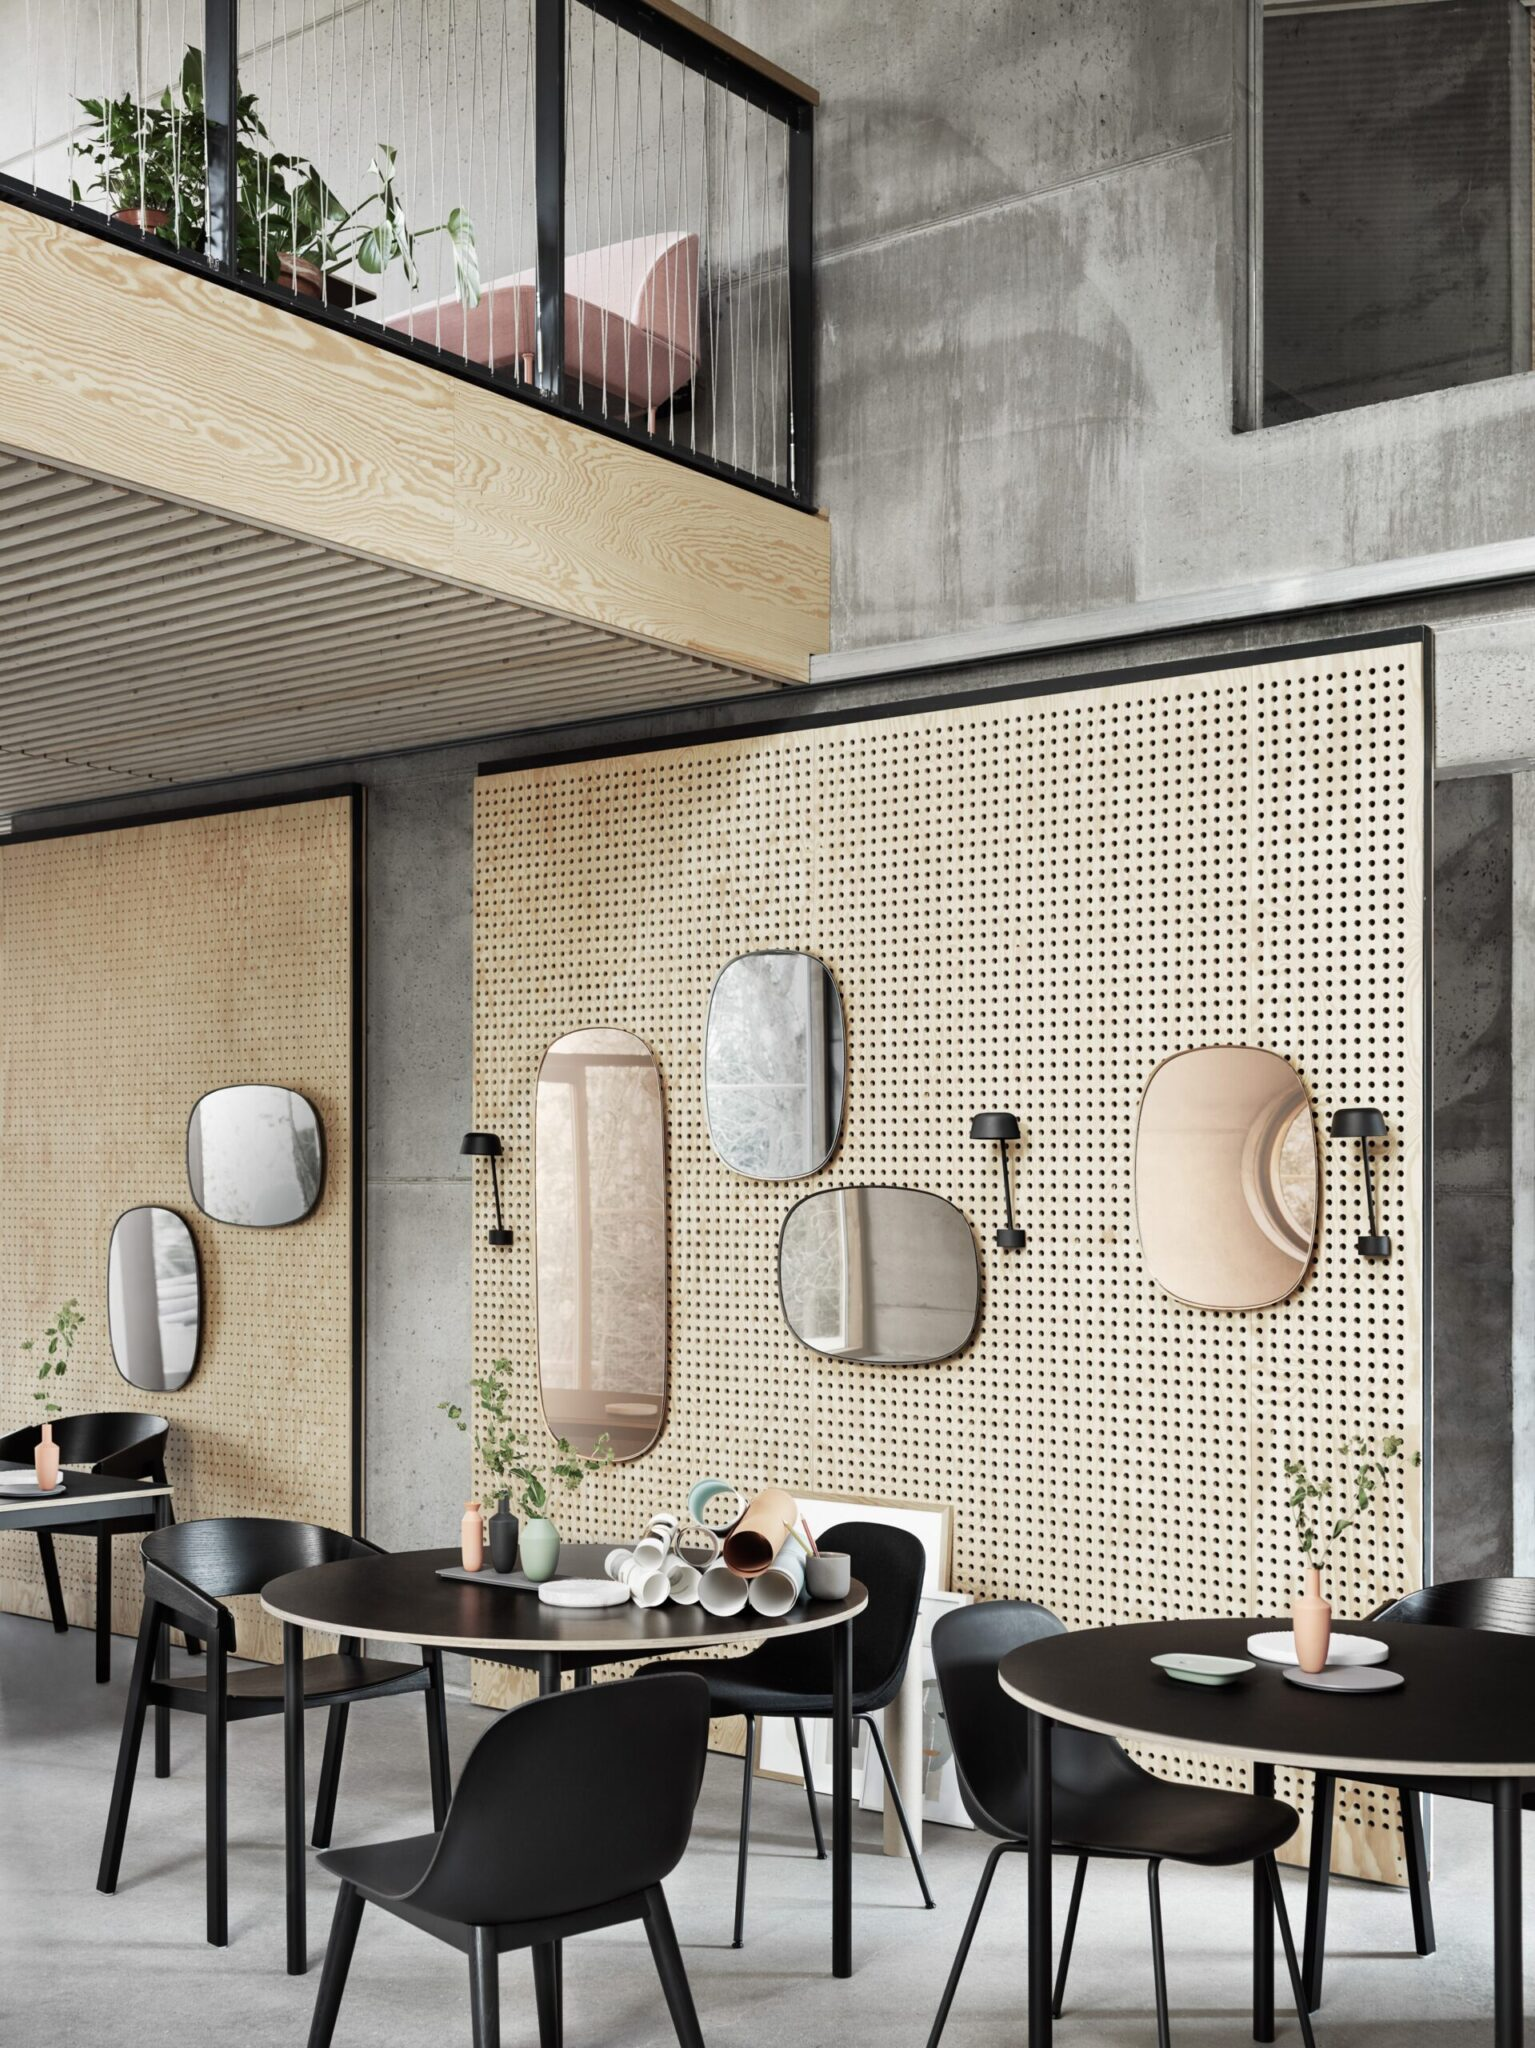 Framed_Mirrors_Cafe_Steeting_Lean_O110_Base_Table_med-res-scaled